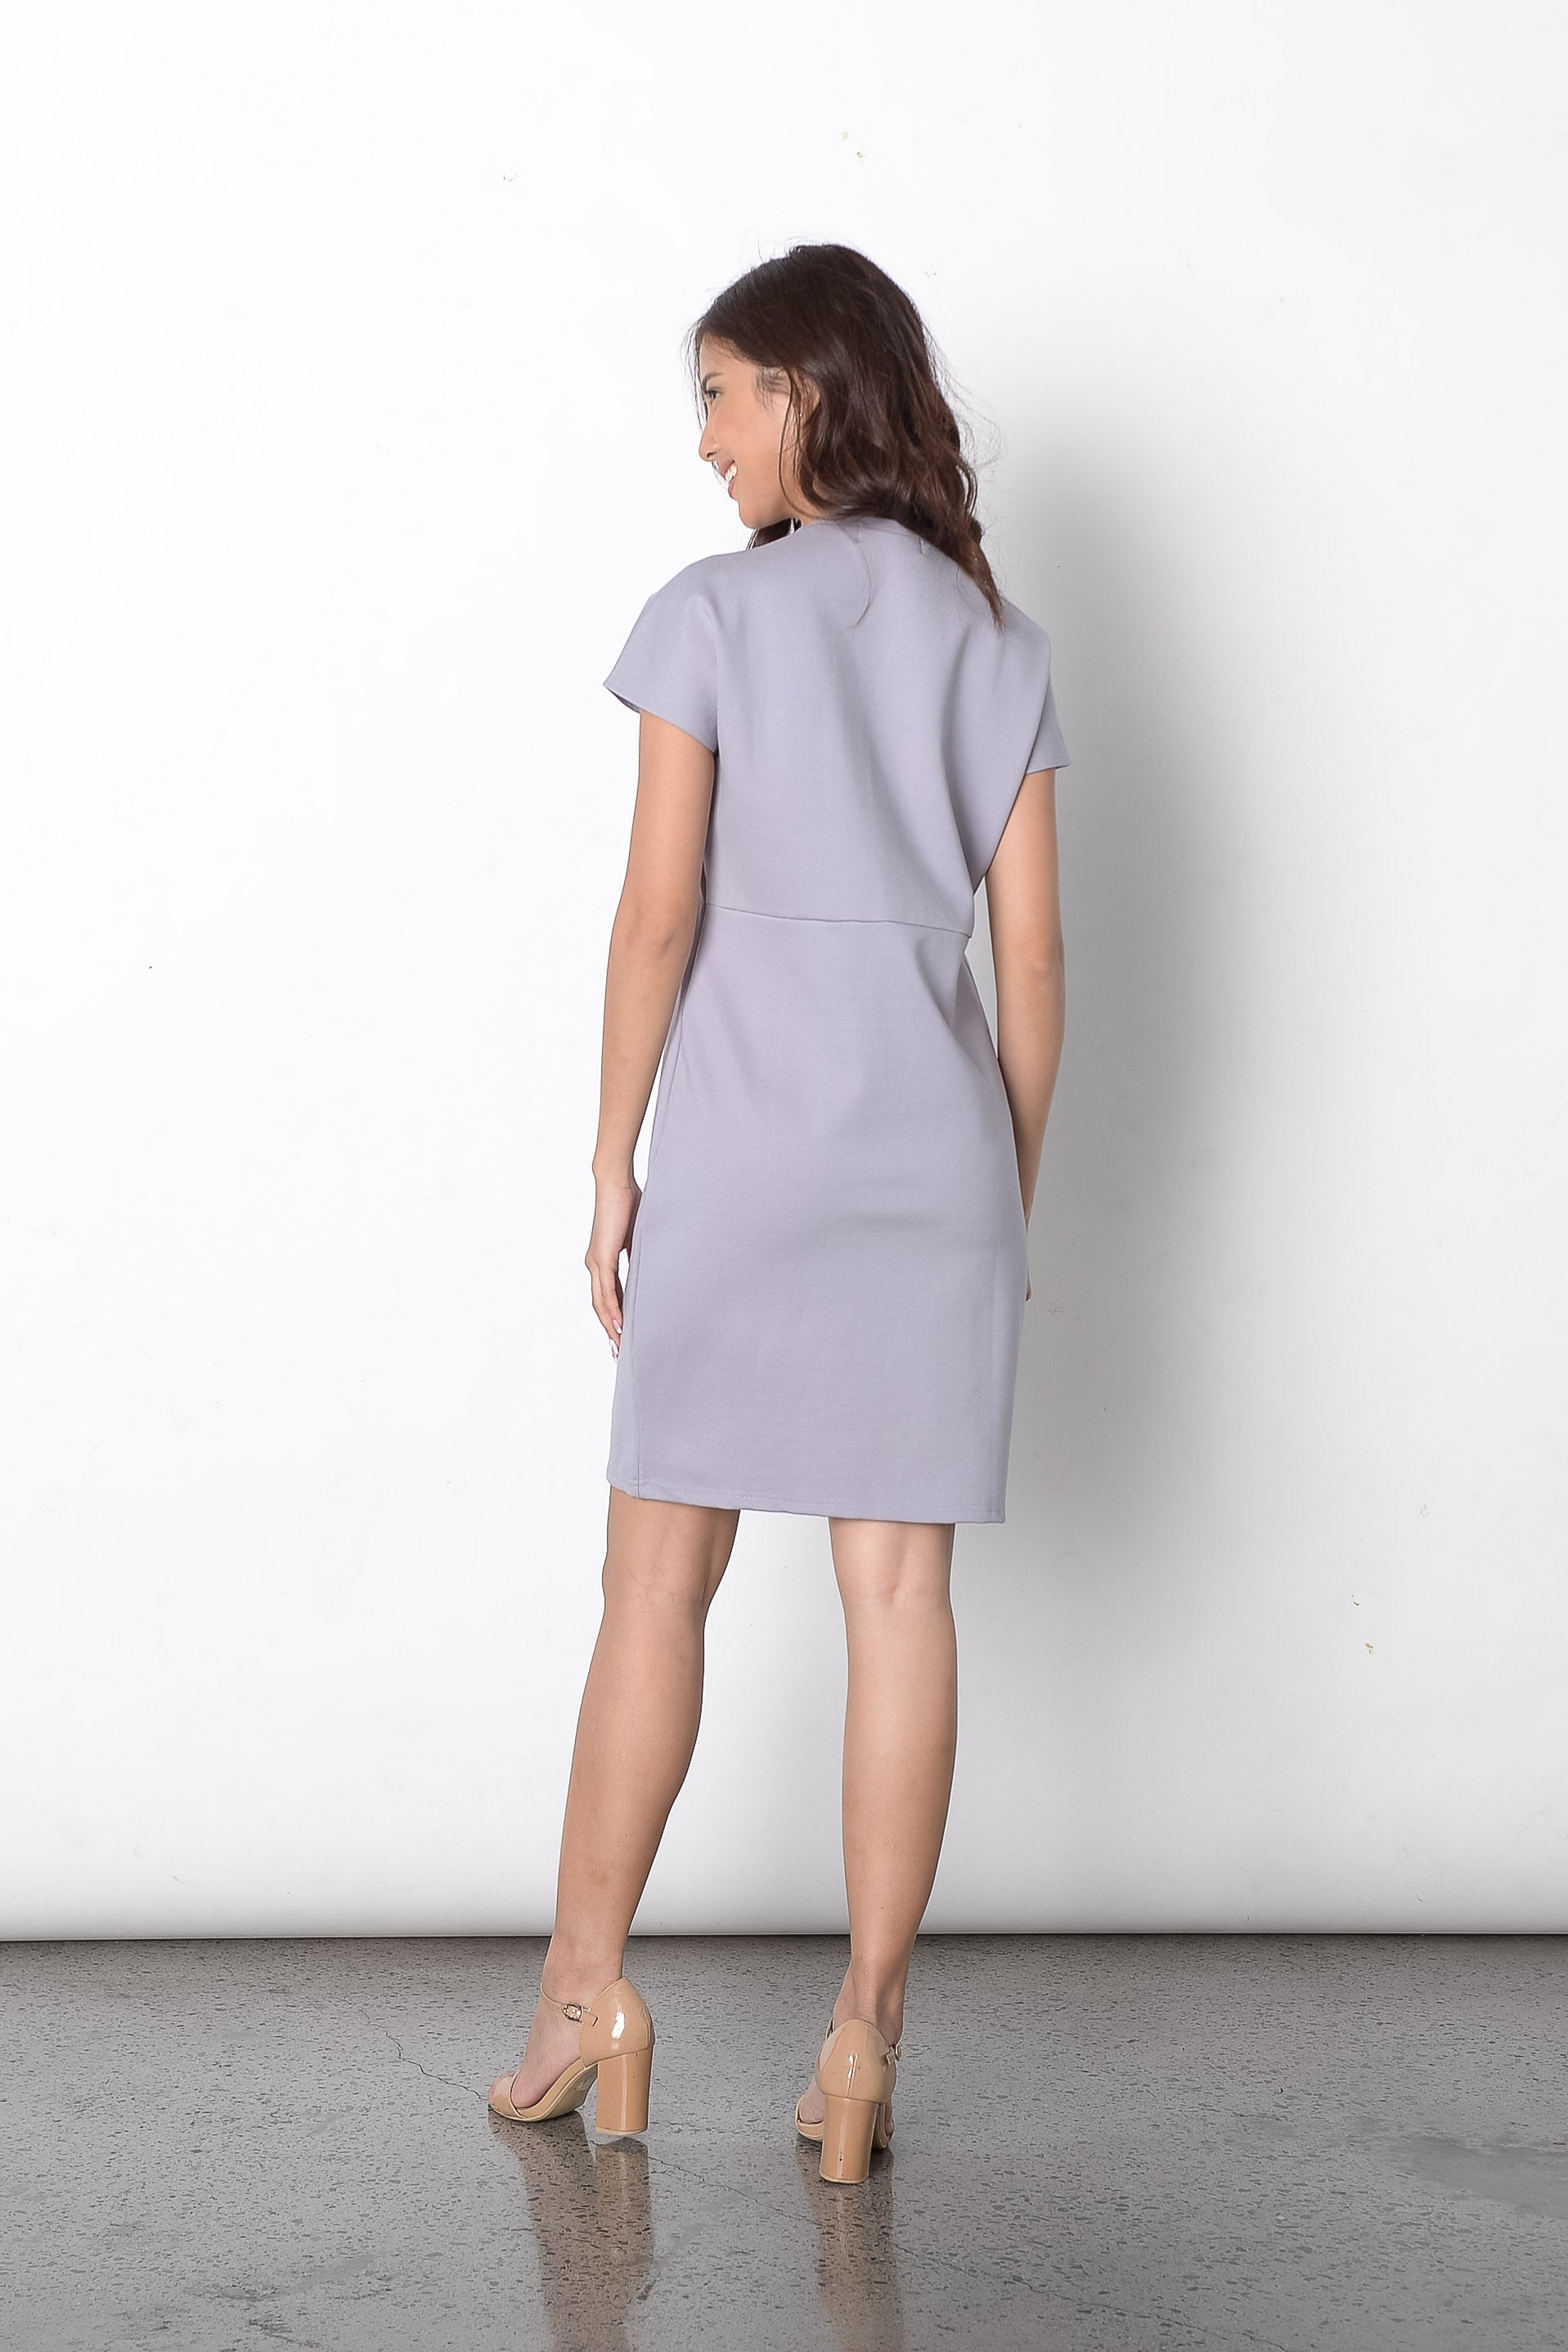 Dido Dress in Grey